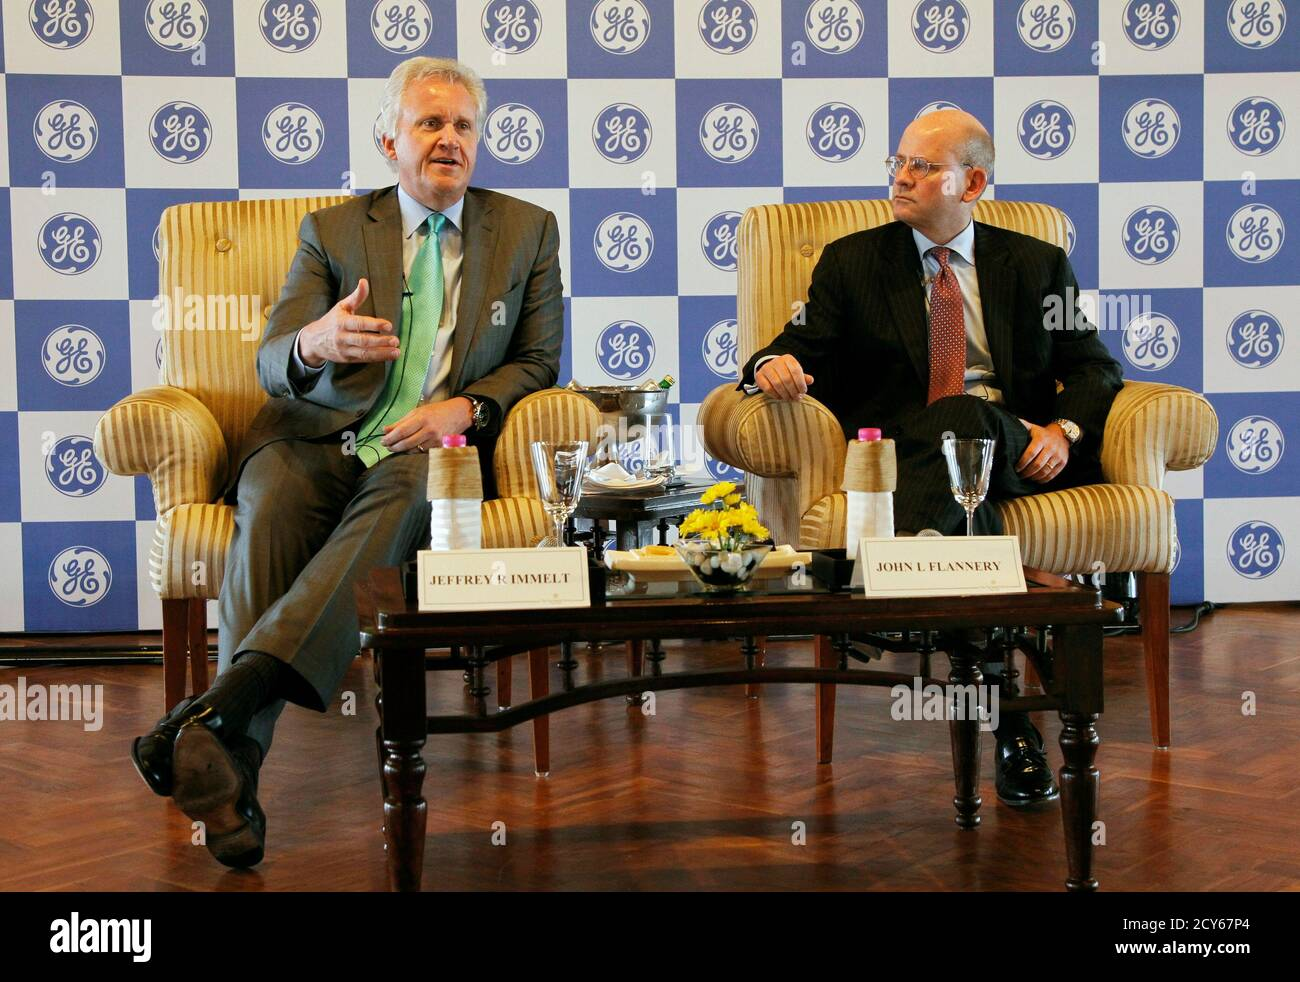 """General Electric Co Chief Executive Jeff Immelt (L) speaks with the media as John Flannery, head of GE in India, watches in New Delhi February 22, 2013. General Electric Co expects revenues from the company's Indian business to grow between 15 and 20 percent on a """"sustainable basis"""", Immelt said on Friday. GE, which installed India's first hydro power plant in 1902, has Indian revenues of about $2.8 billion and employs about 15,000 people there. REUTERS/B Mathur (INDIA - Tags: BUSINESS ENERGY) Stock Photo"""